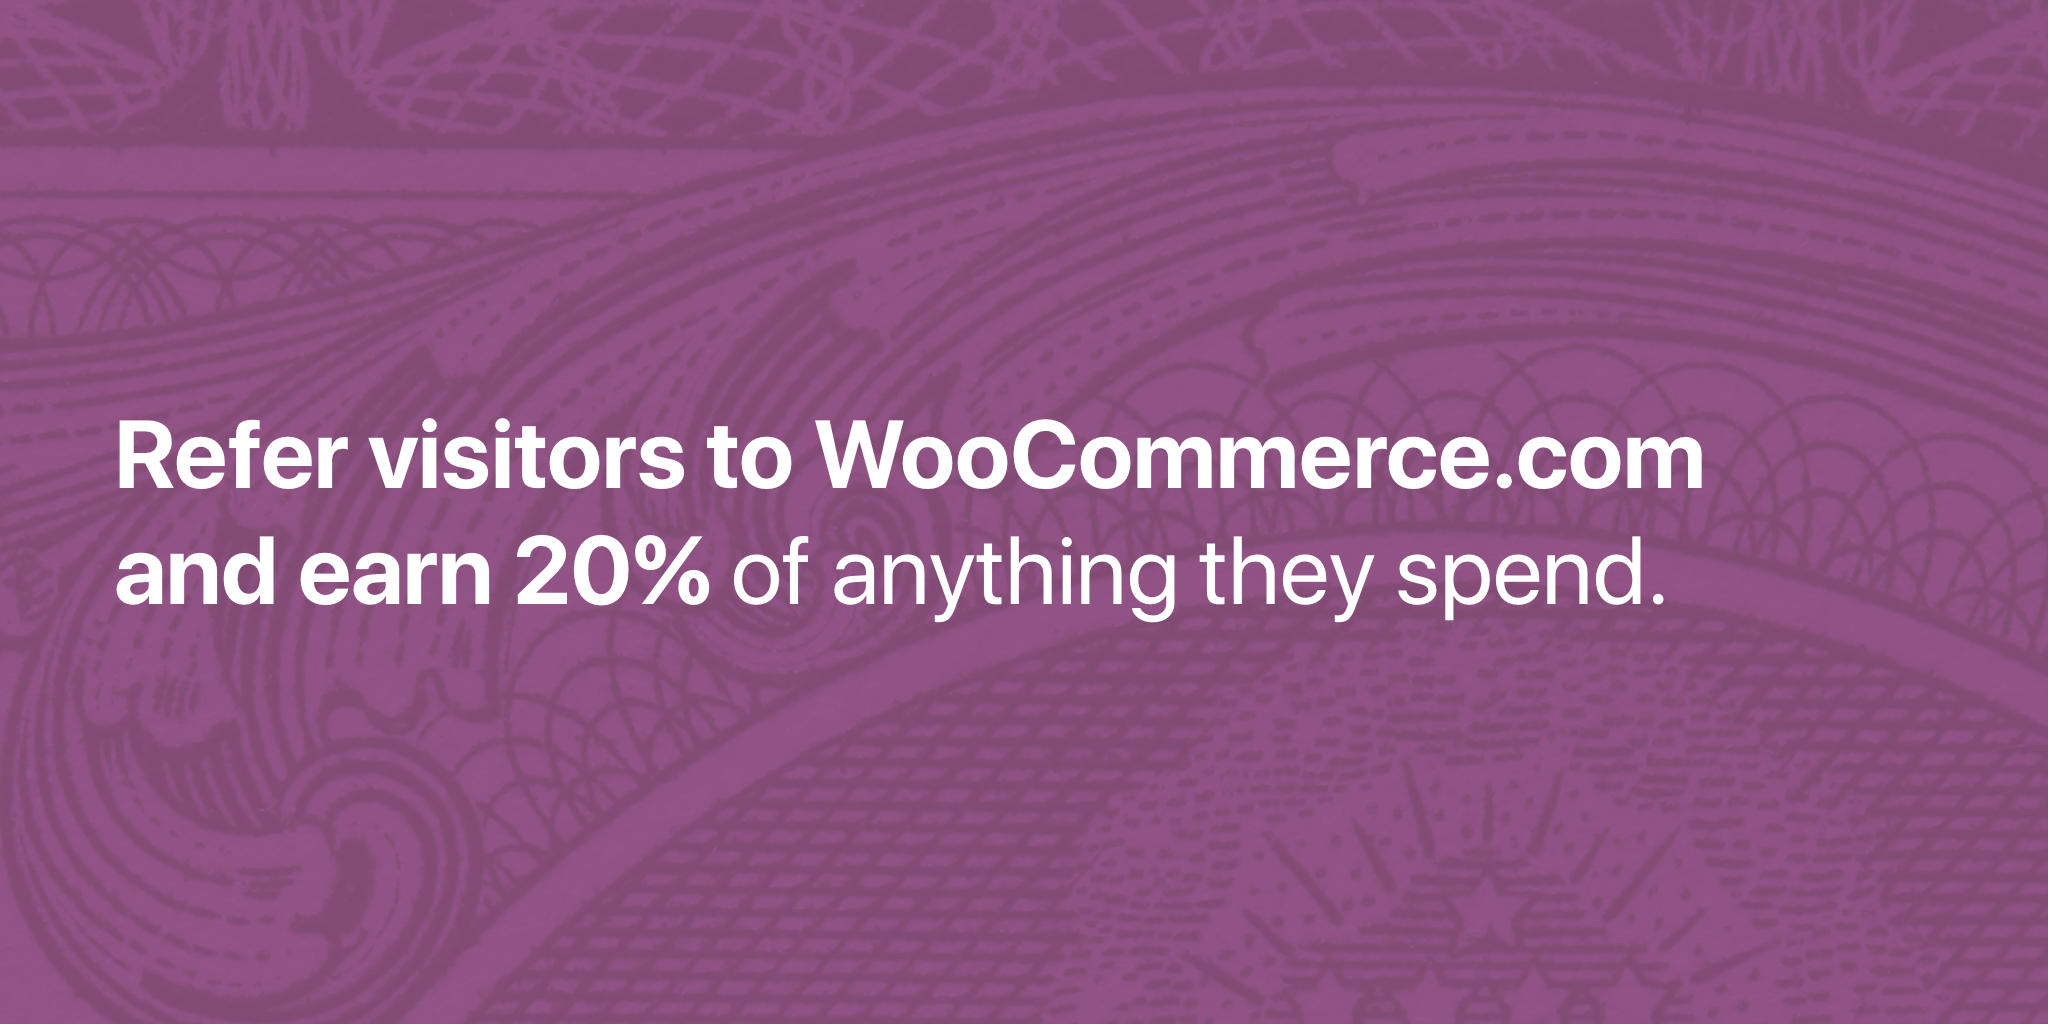 Start earning for referrals with the WooCommerce Affiliate